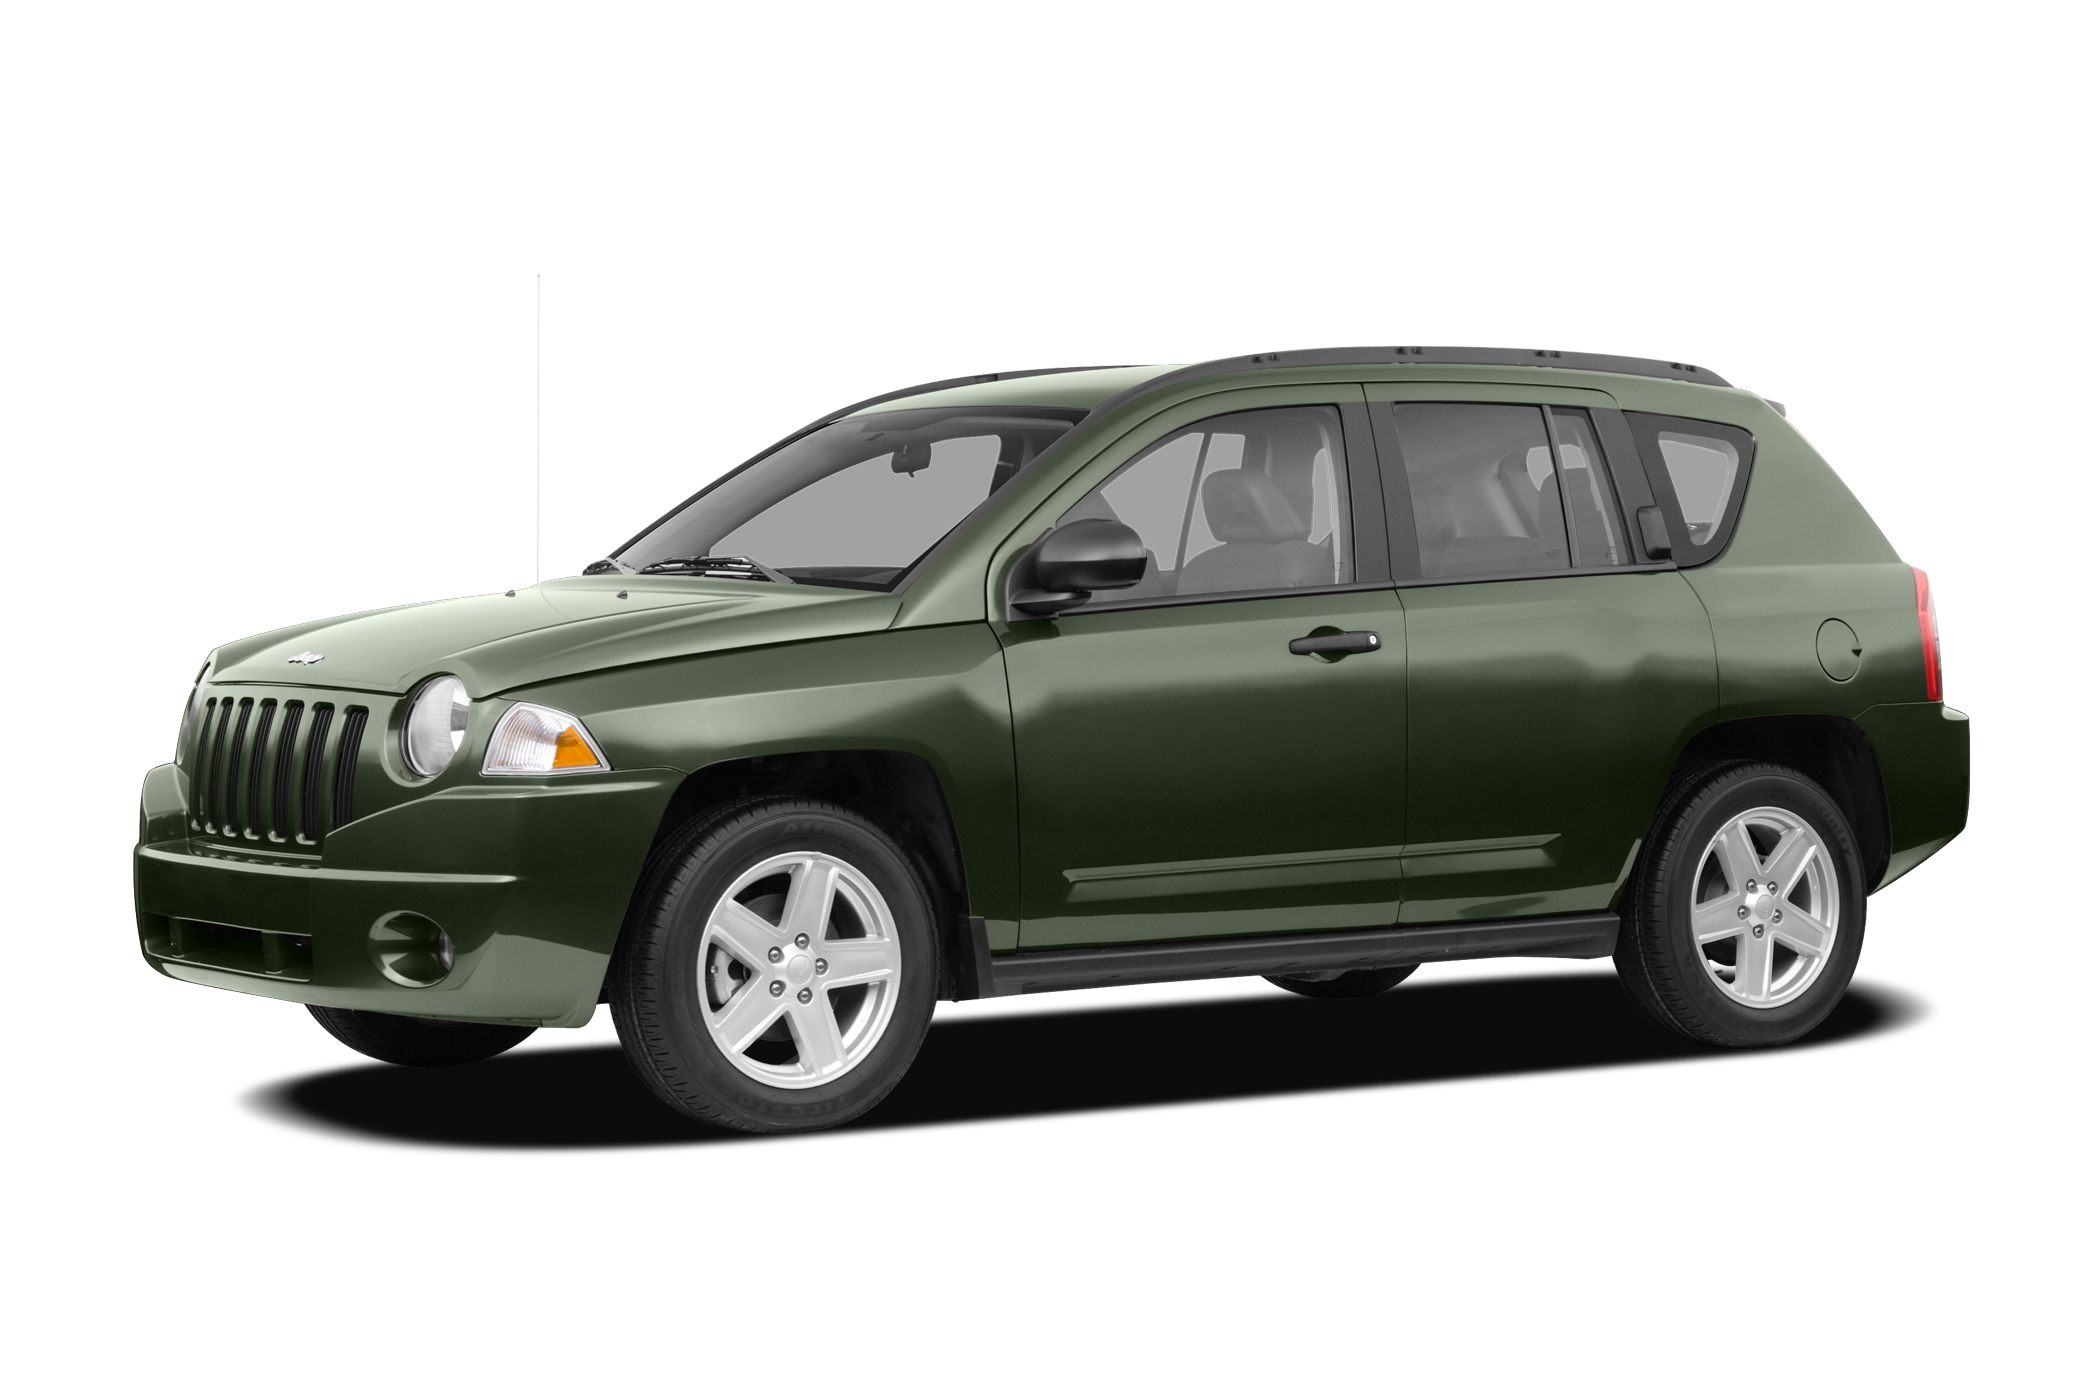 2007 Jeep Compass Limited SUV for sale in Lexington for $8,000 with 116,477 miles